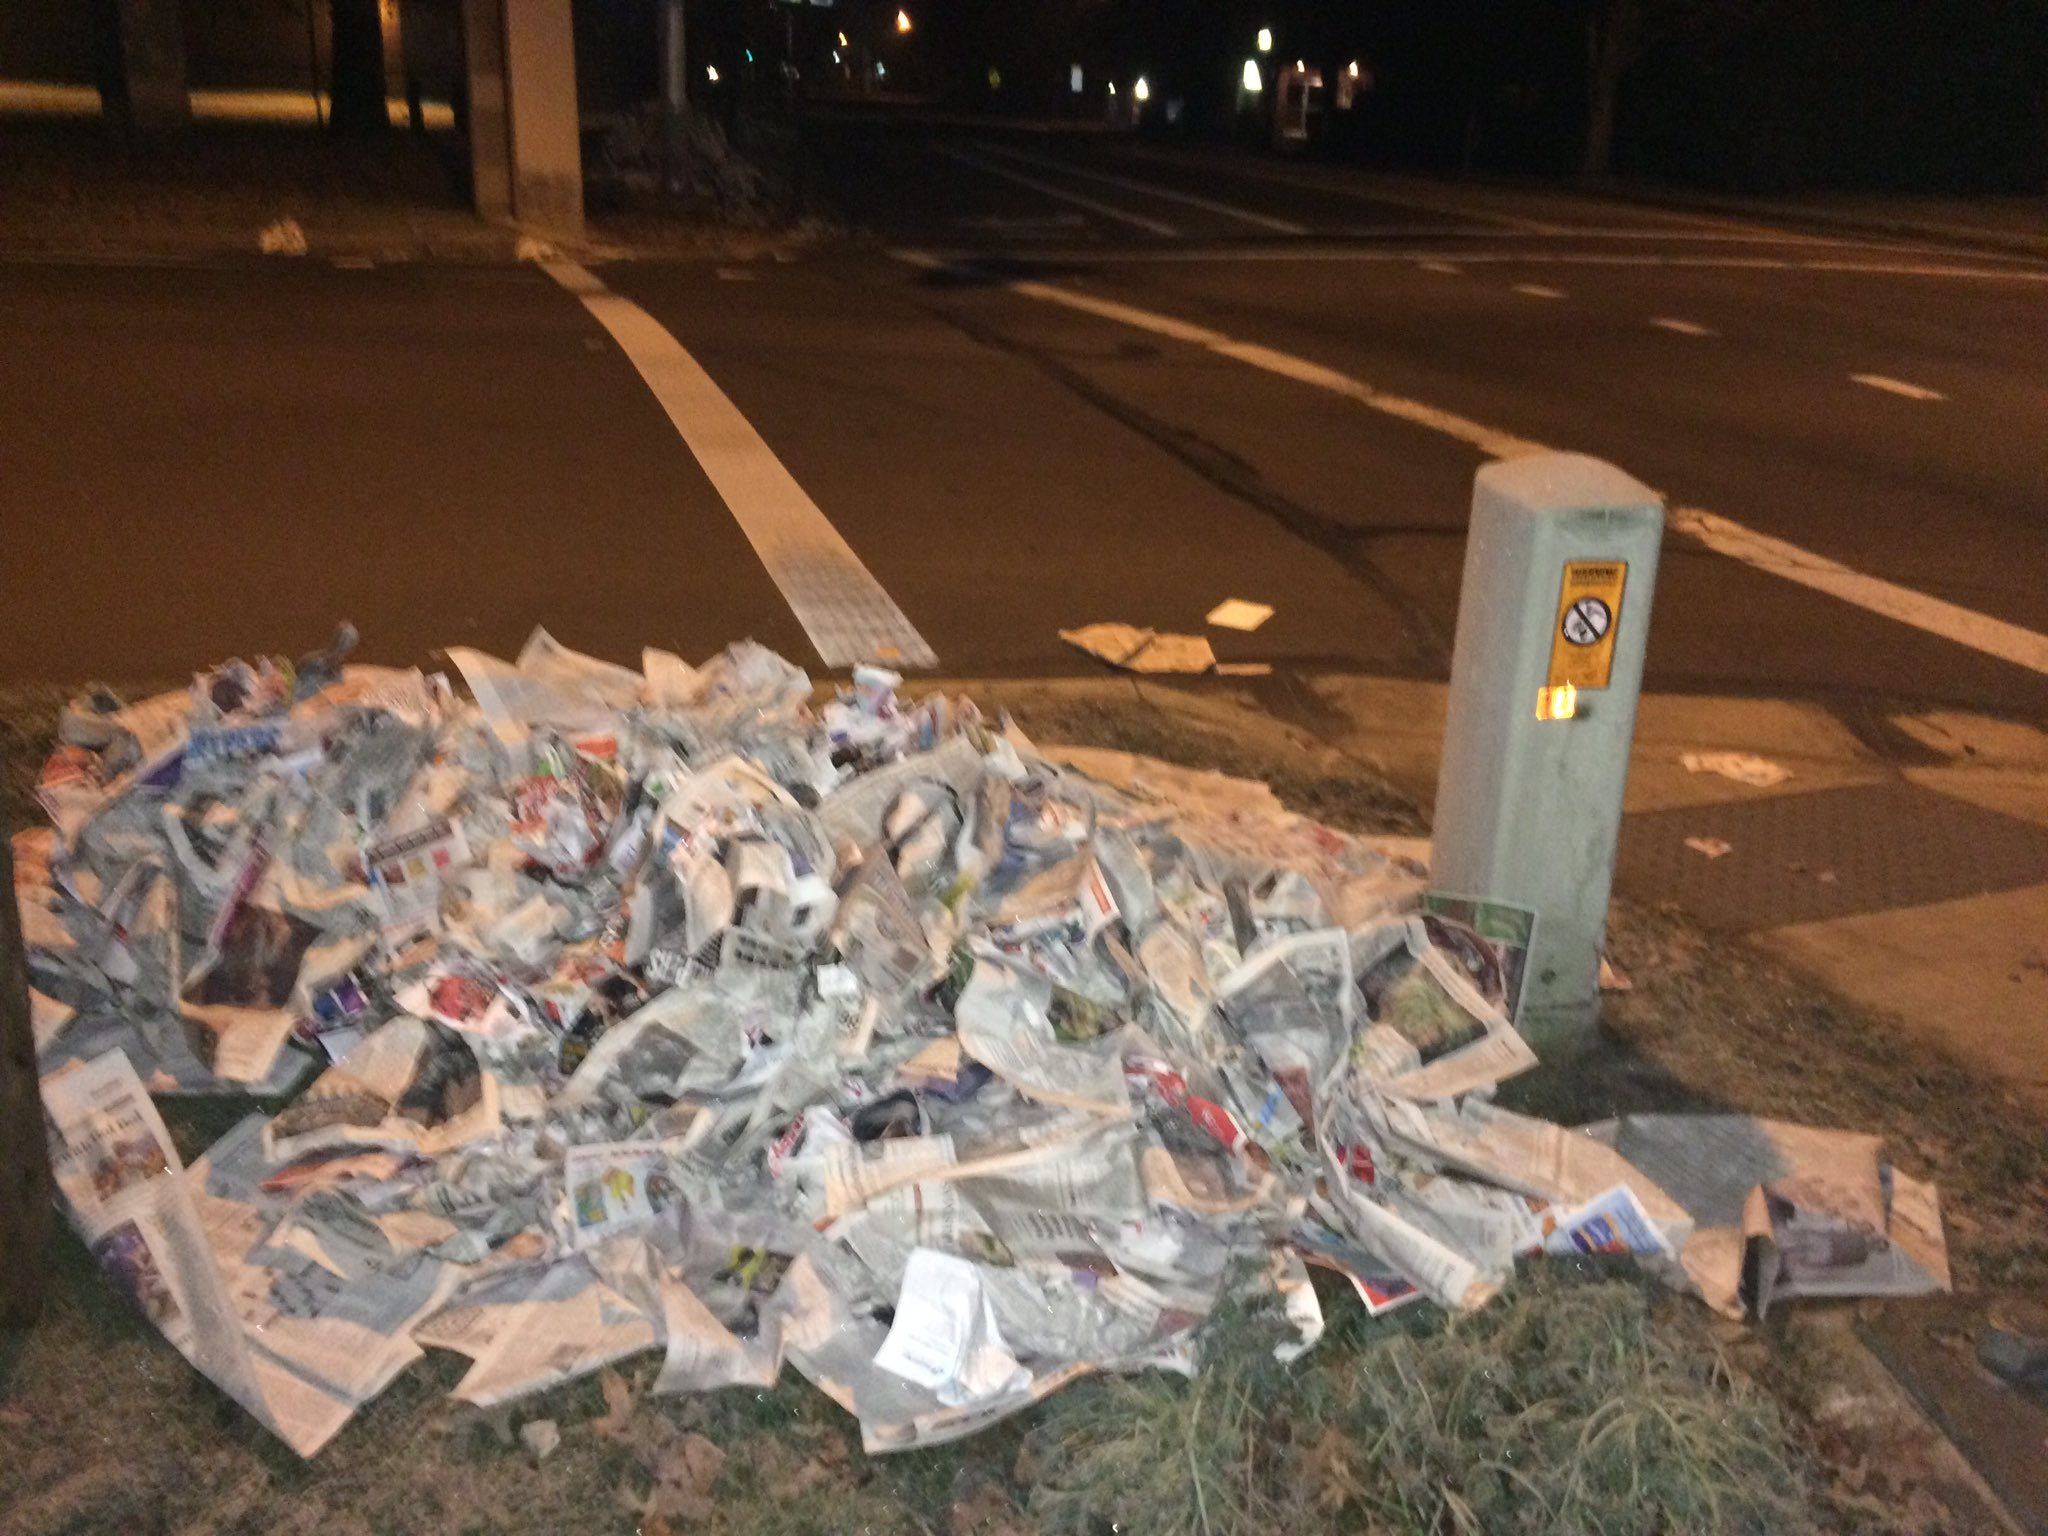 The newspapers had made it as far as the sidewalk by 6 a.m. Tuesday. (Ellen Meny)